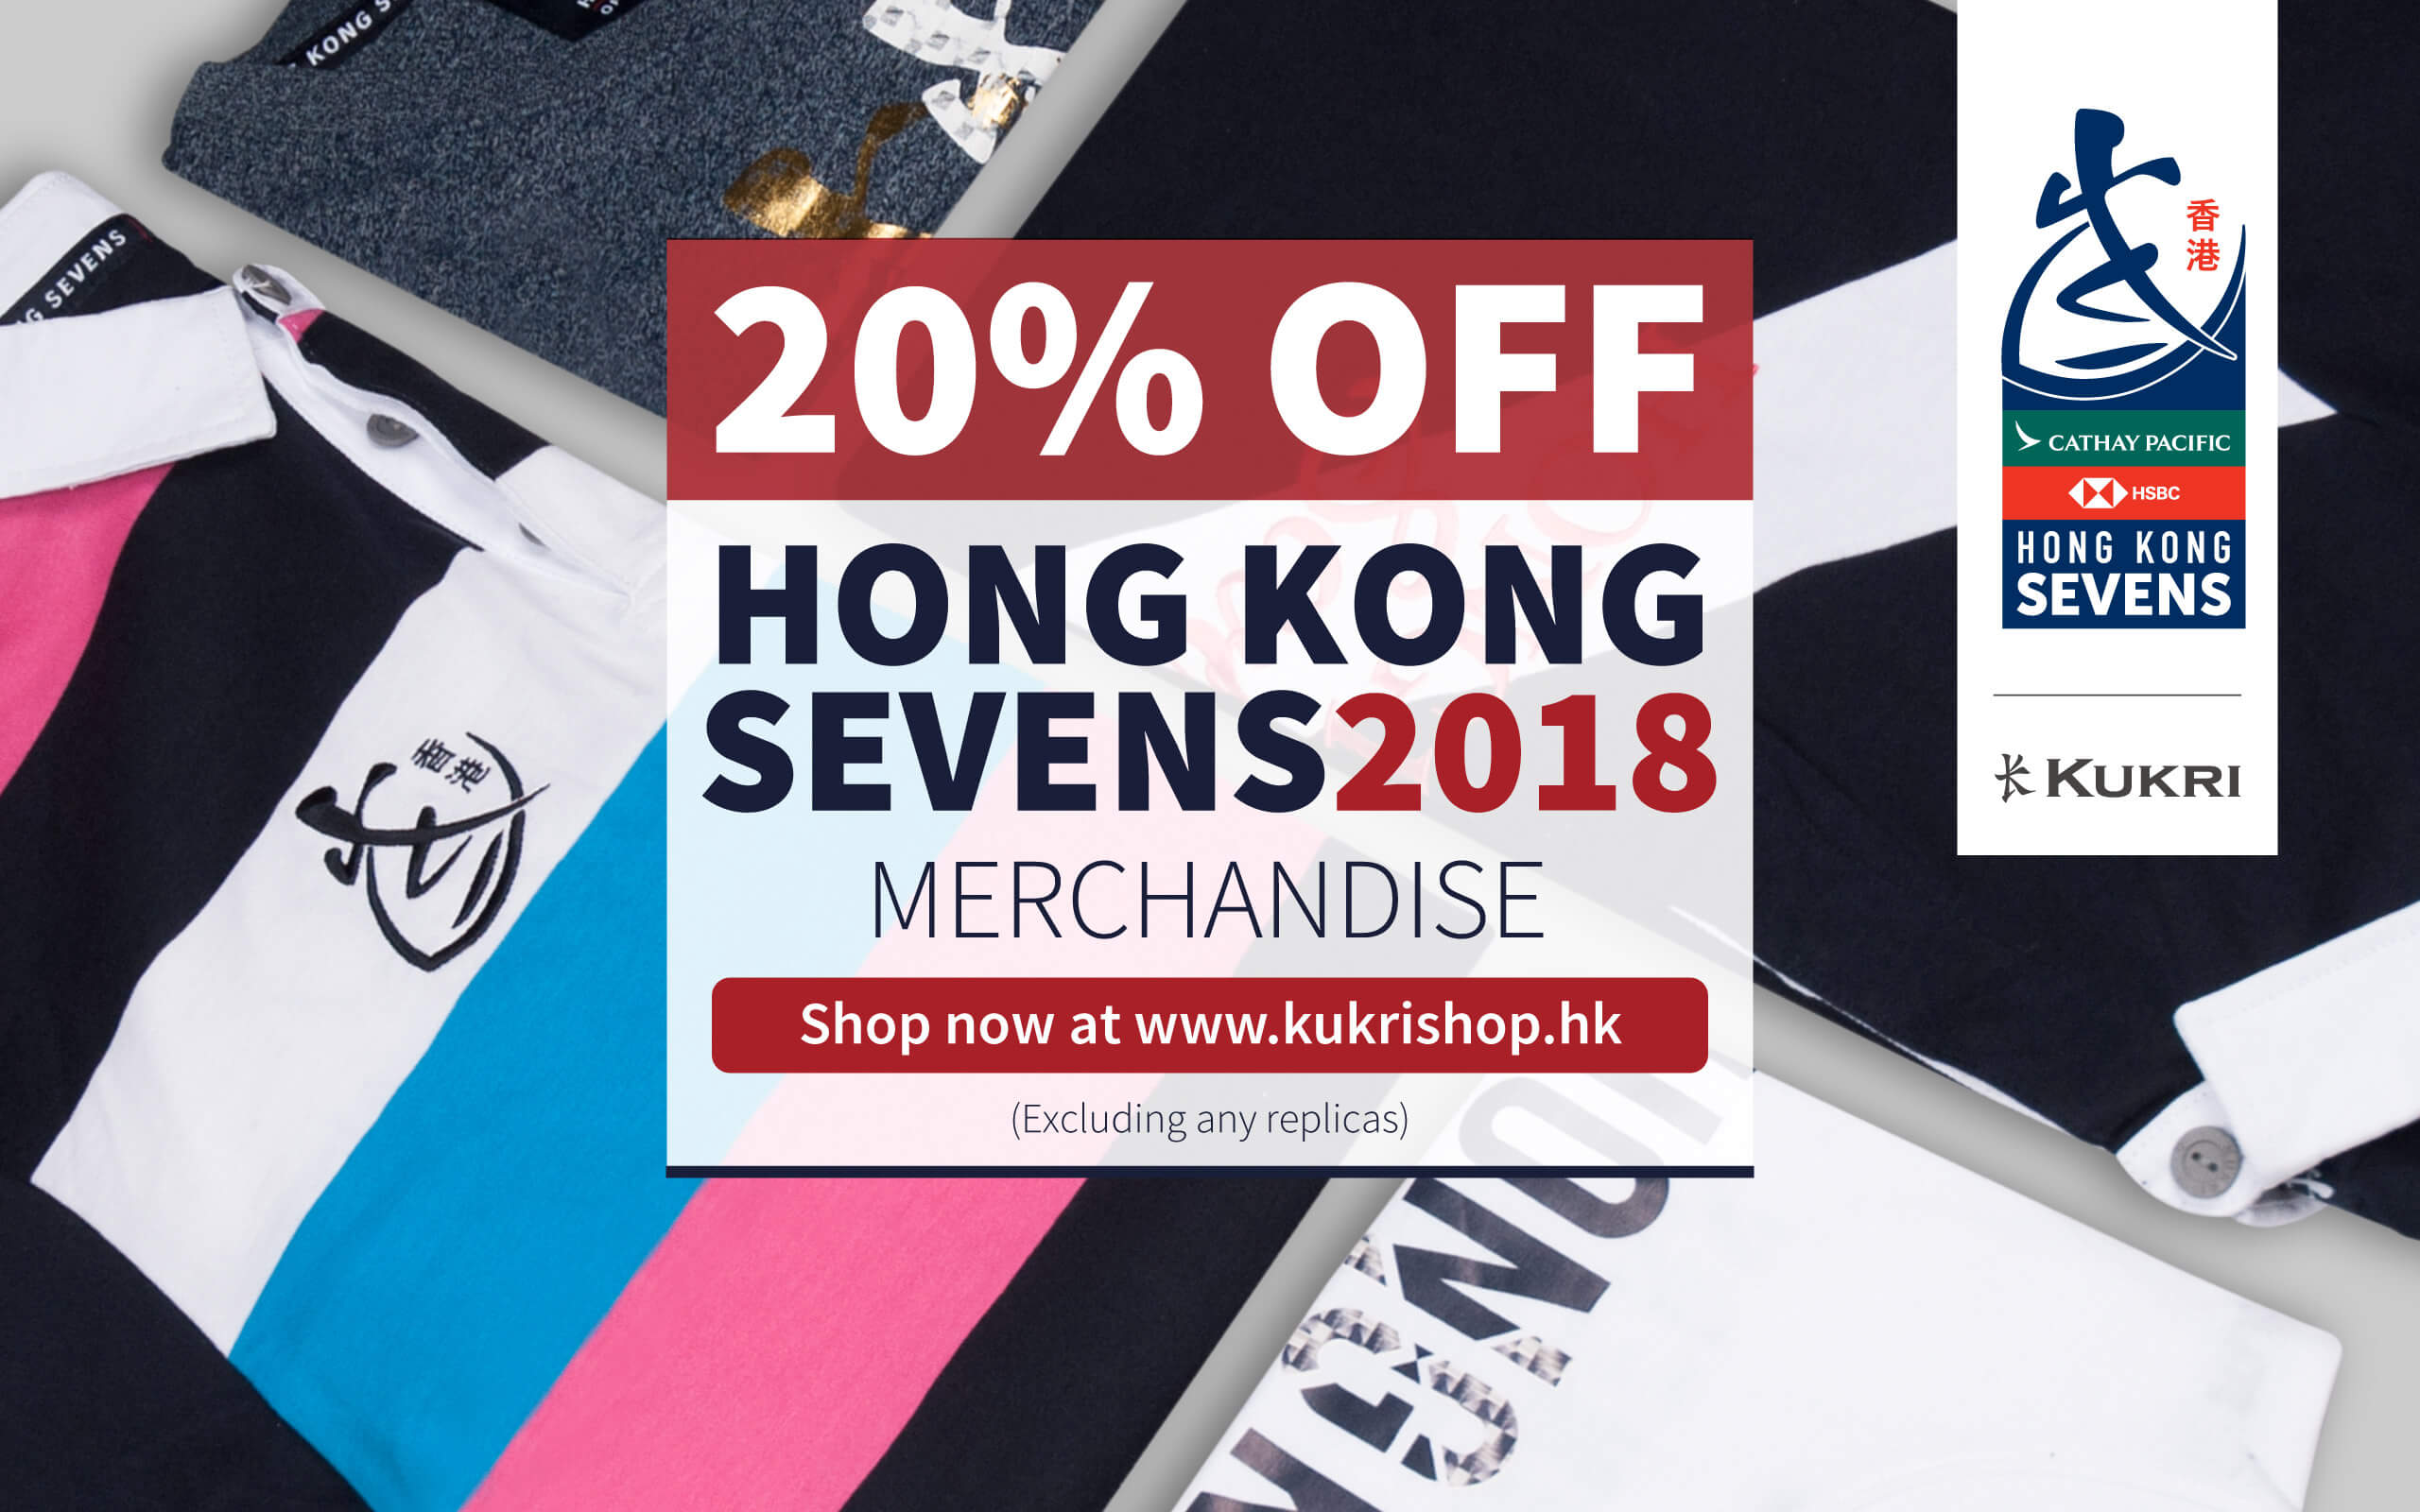 Kukri_HK7s_Merchandise_20-OFF_Shop-Banner_2560x1600